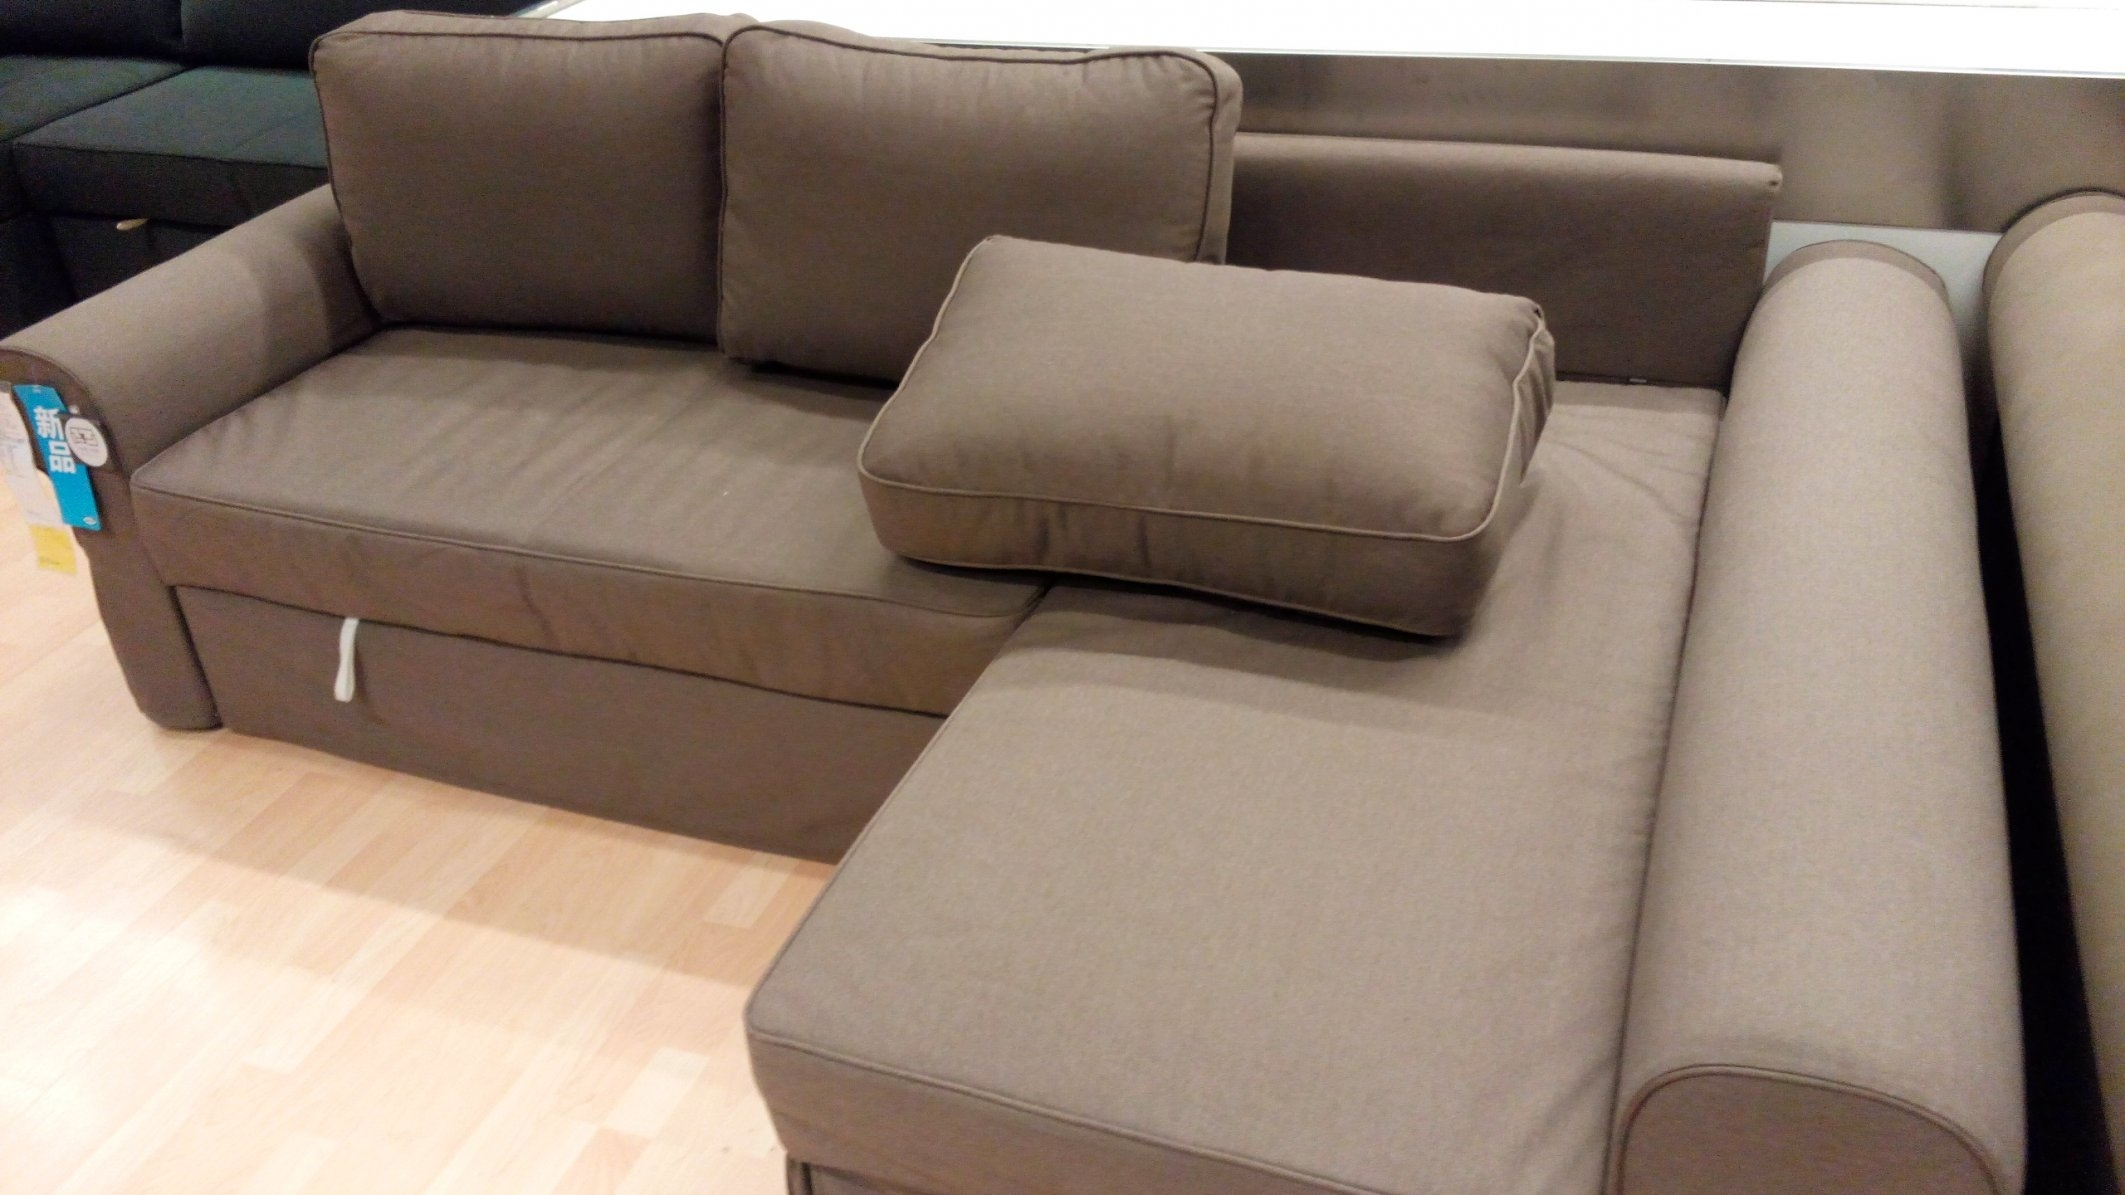 Manstad Sofa Bed Dimensions #2 Ikea Backabro Sofa Bed With Chaise throughout Manstad Sofas (Image 7 of 10)